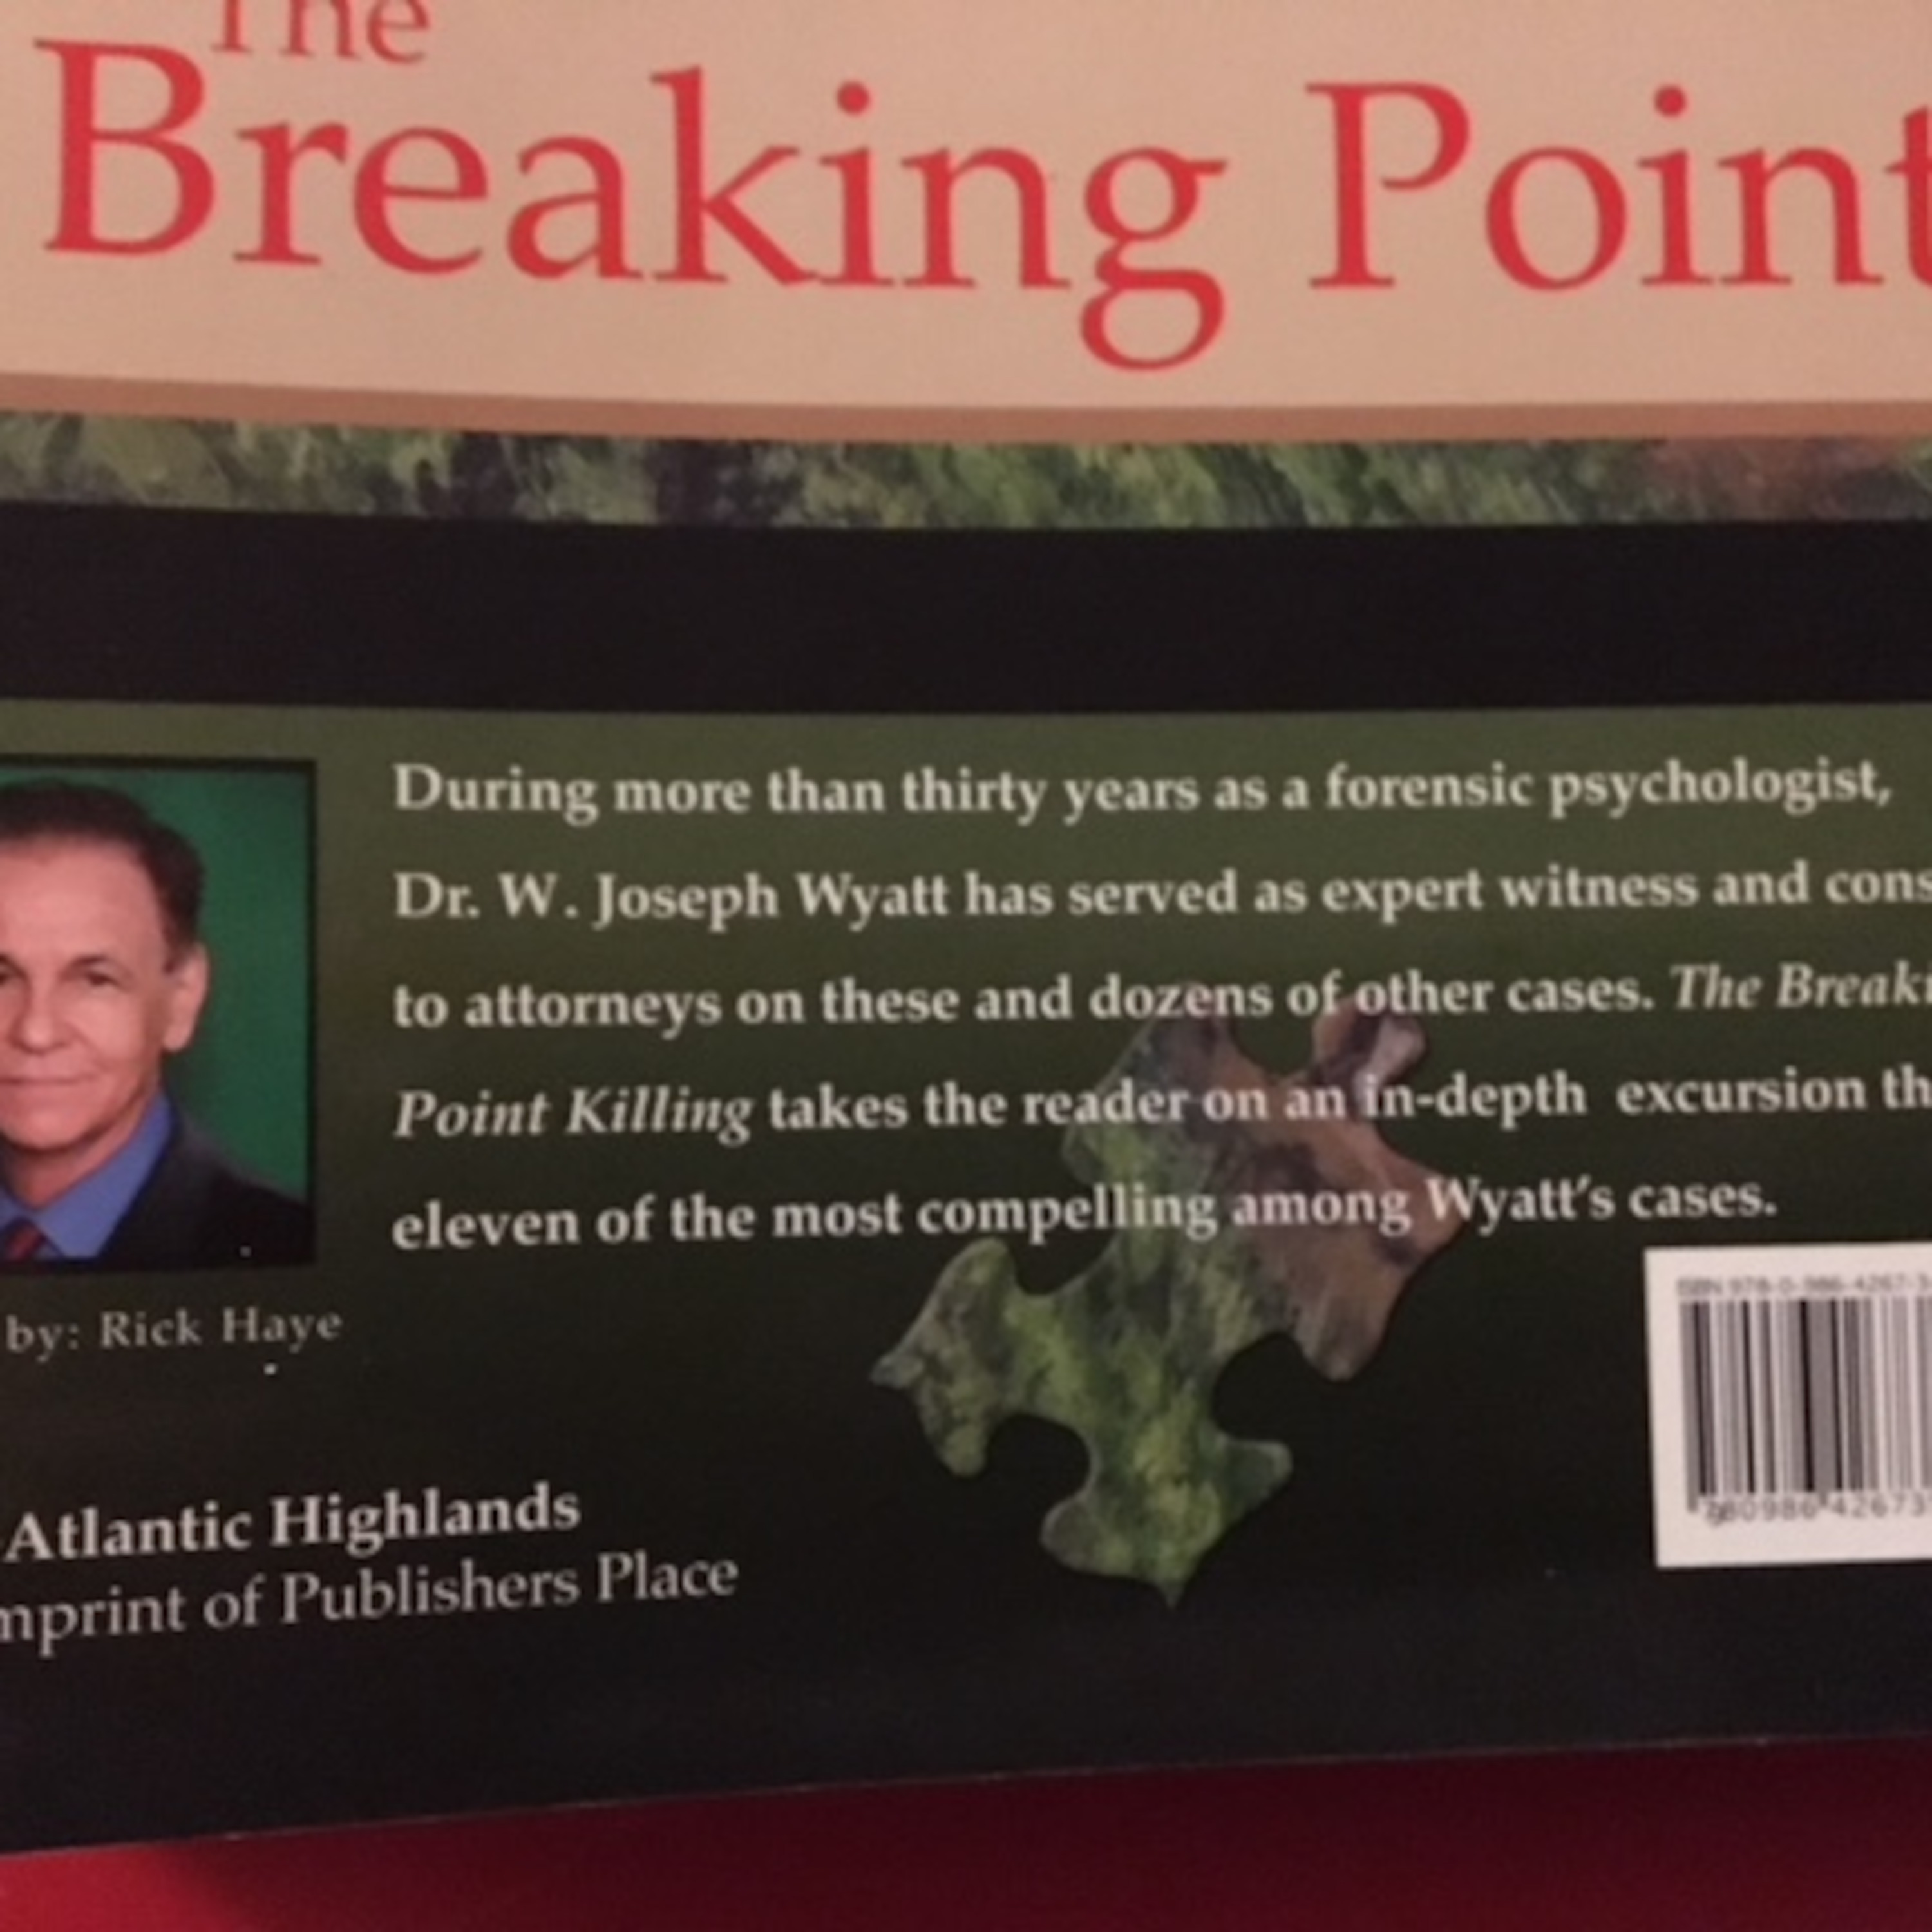 Interview with the Forensic Psychologist – Dr. W. Joseph Wyatt discusses his long career as it is detailed in his book - The Breaking Point Killing: And Other True Cases of Murder and Malice.